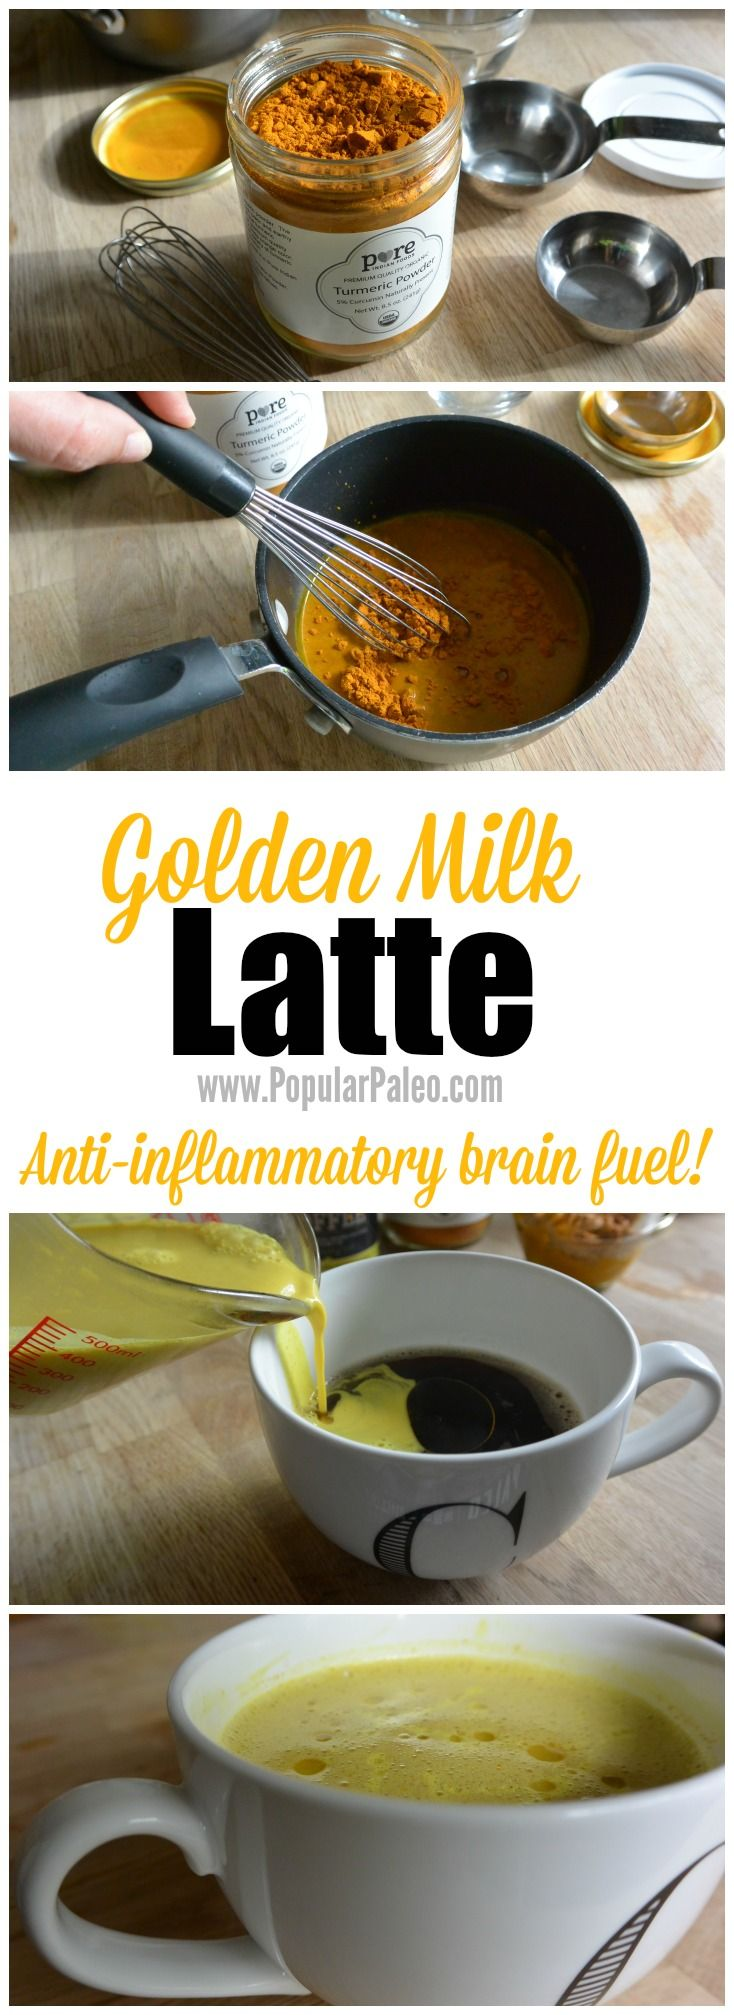 Golden Milk Latte on www.PopularPaleo.com   Turn the traditional anti-inflammatory, antioxidant drink into brain fuel to start your day!